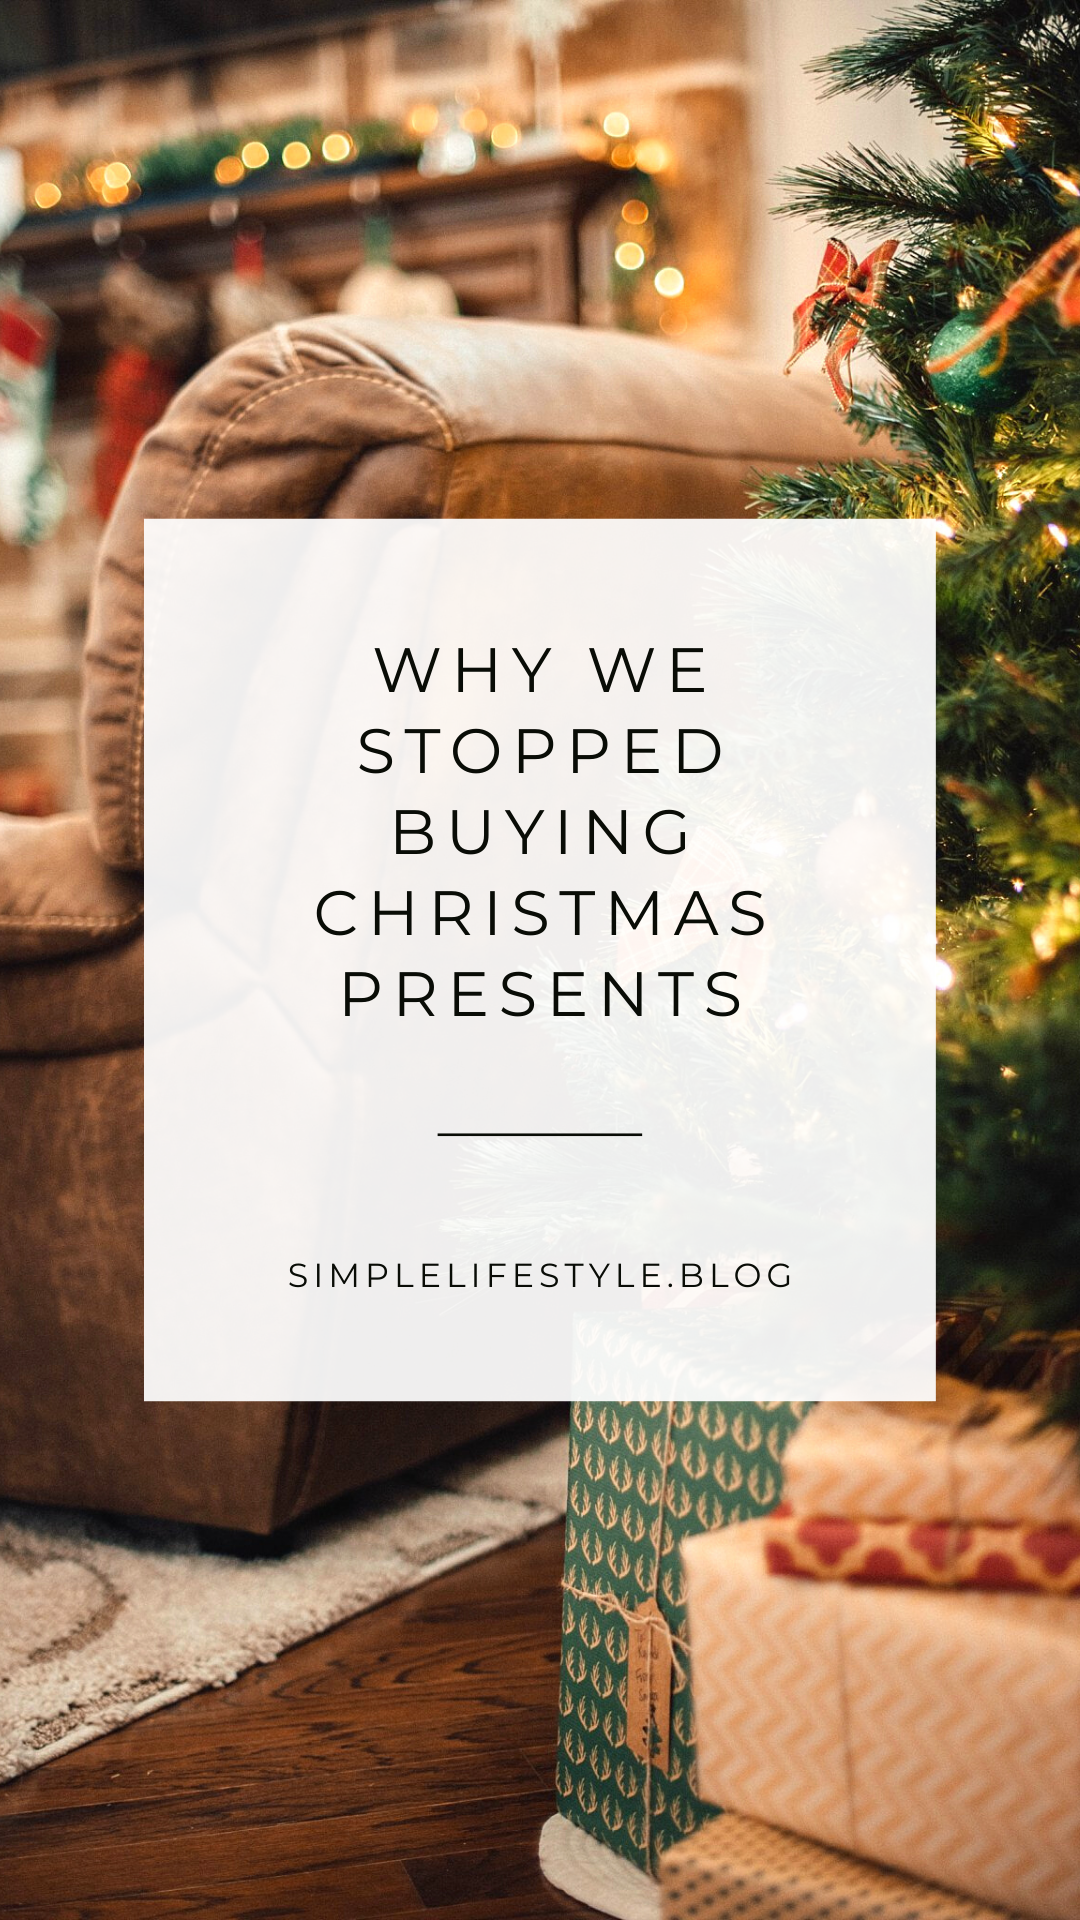 Why We Stopped Buying Christmas Presents by Simple Lifestyle Blog